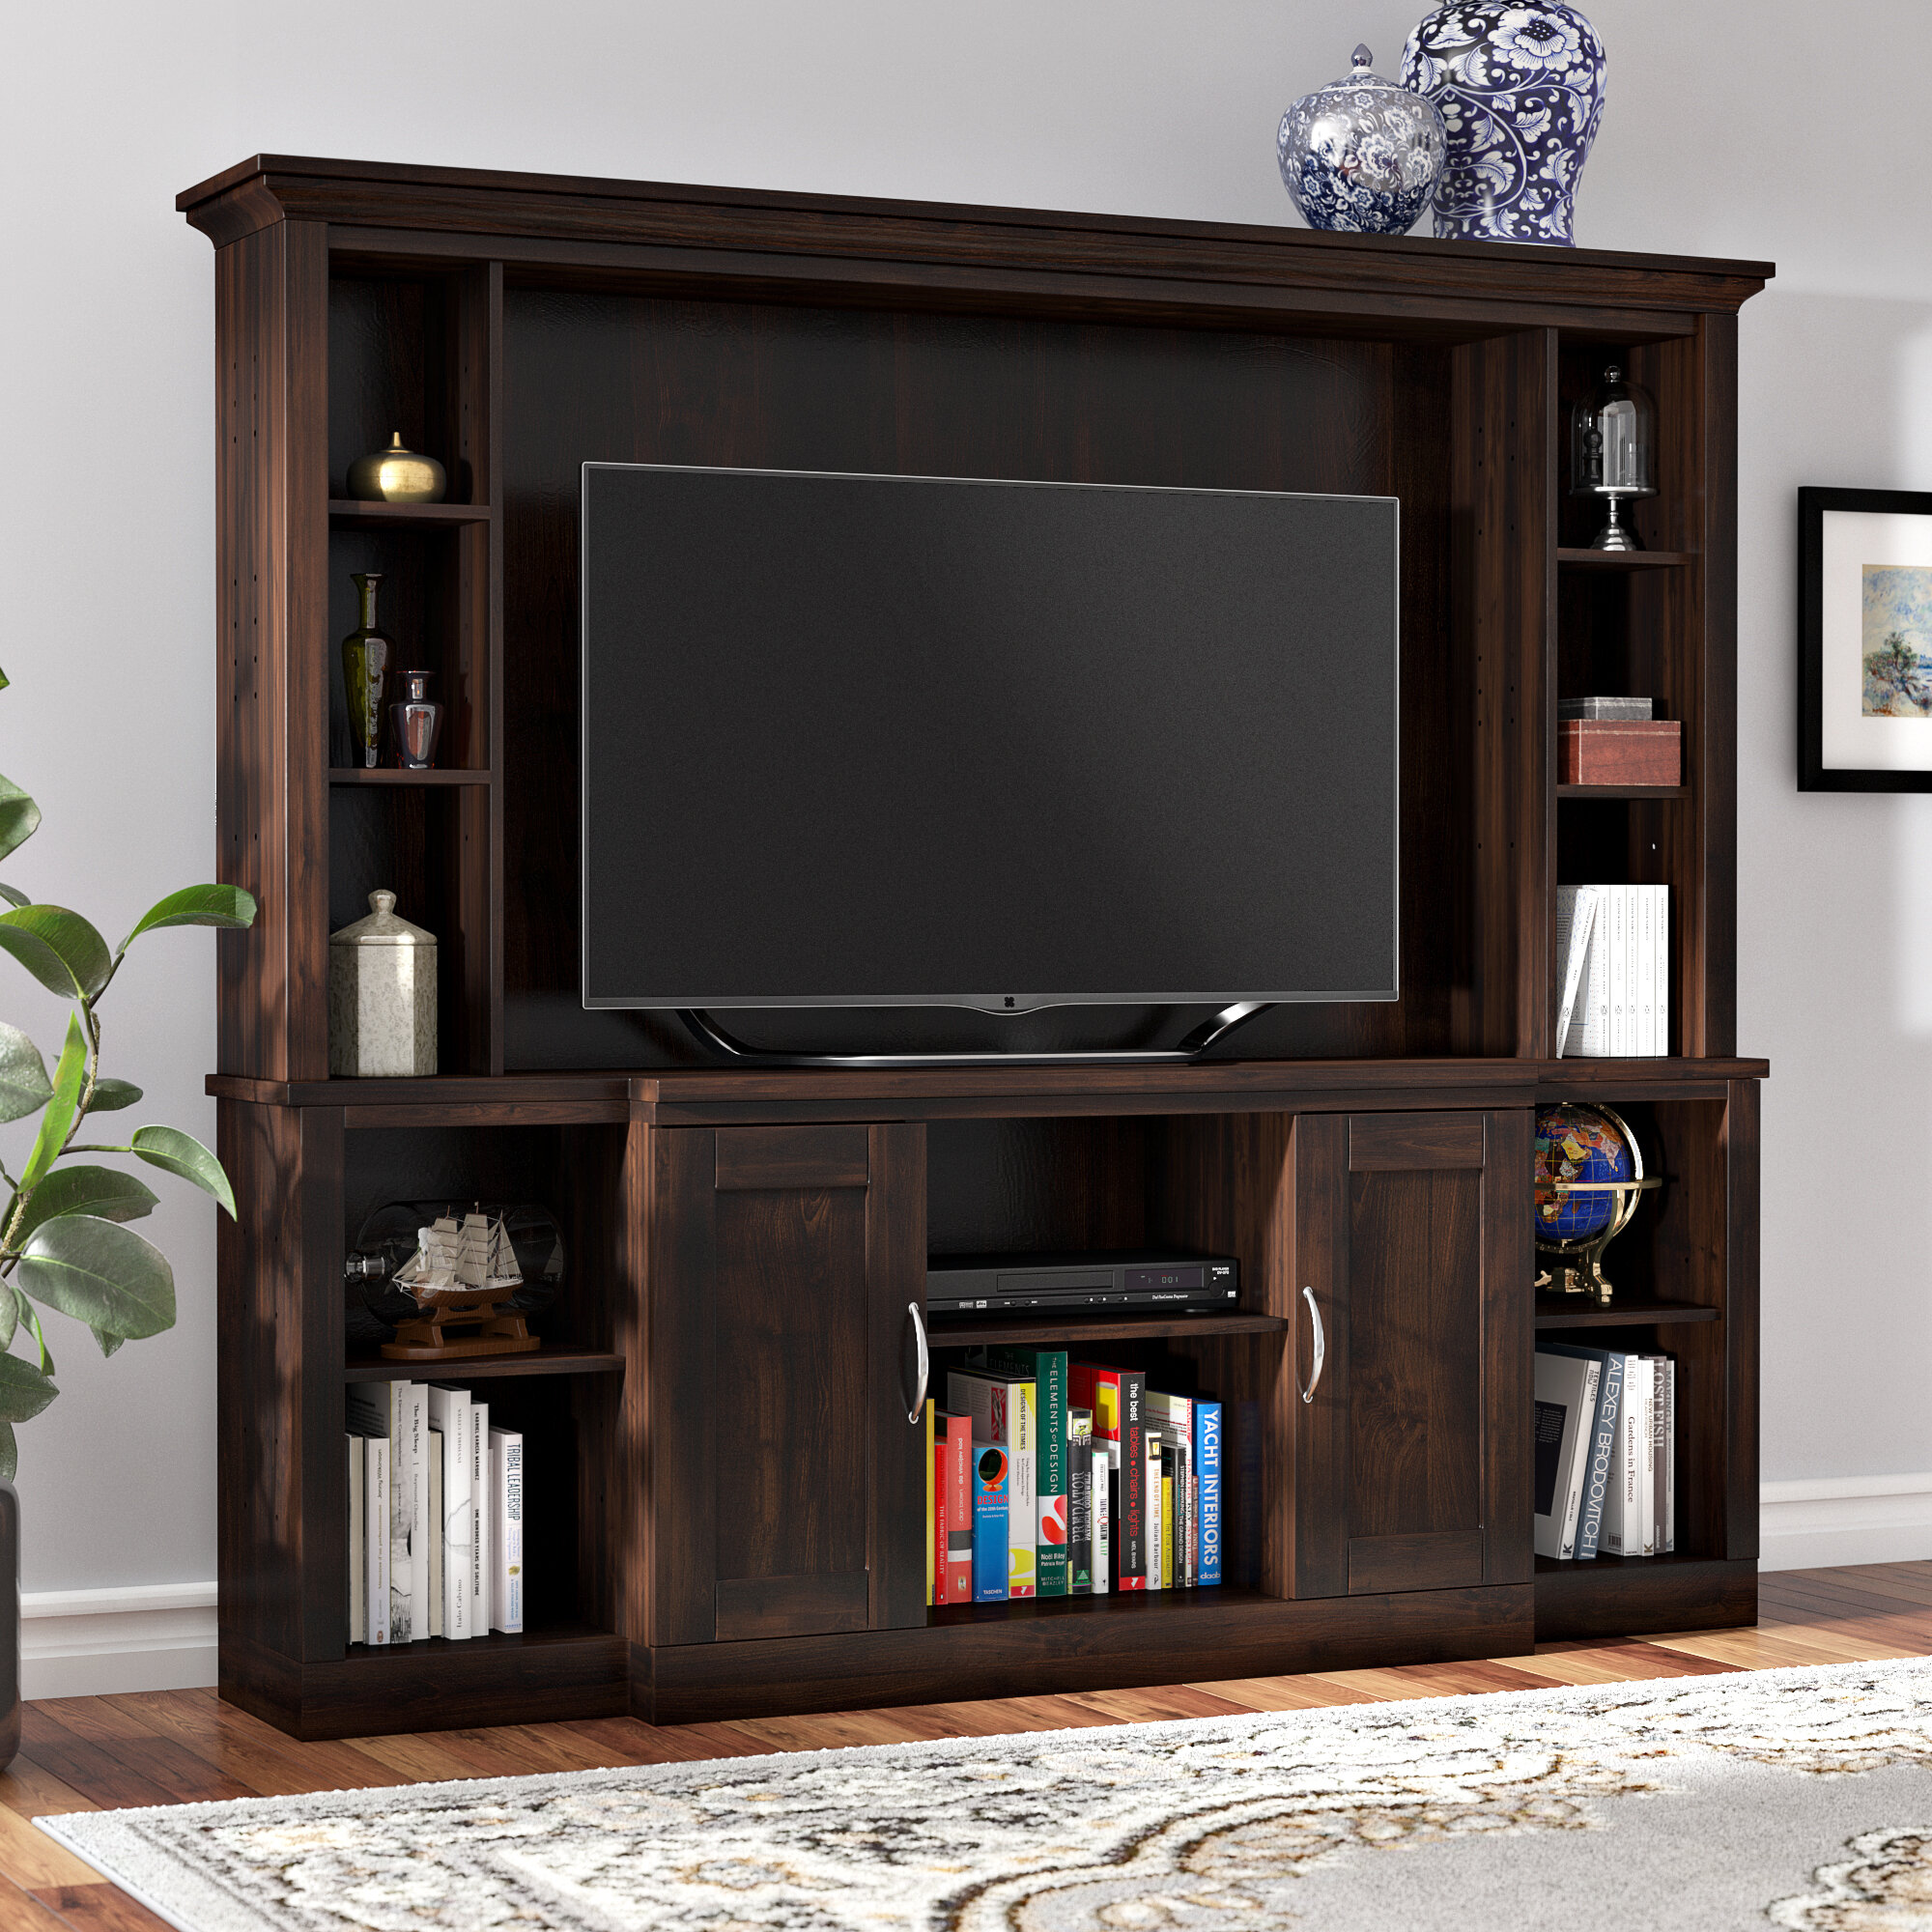 Darby Home Co Hoyne Entertainment Center For Tvs Up To 43 Reviews Wayfair